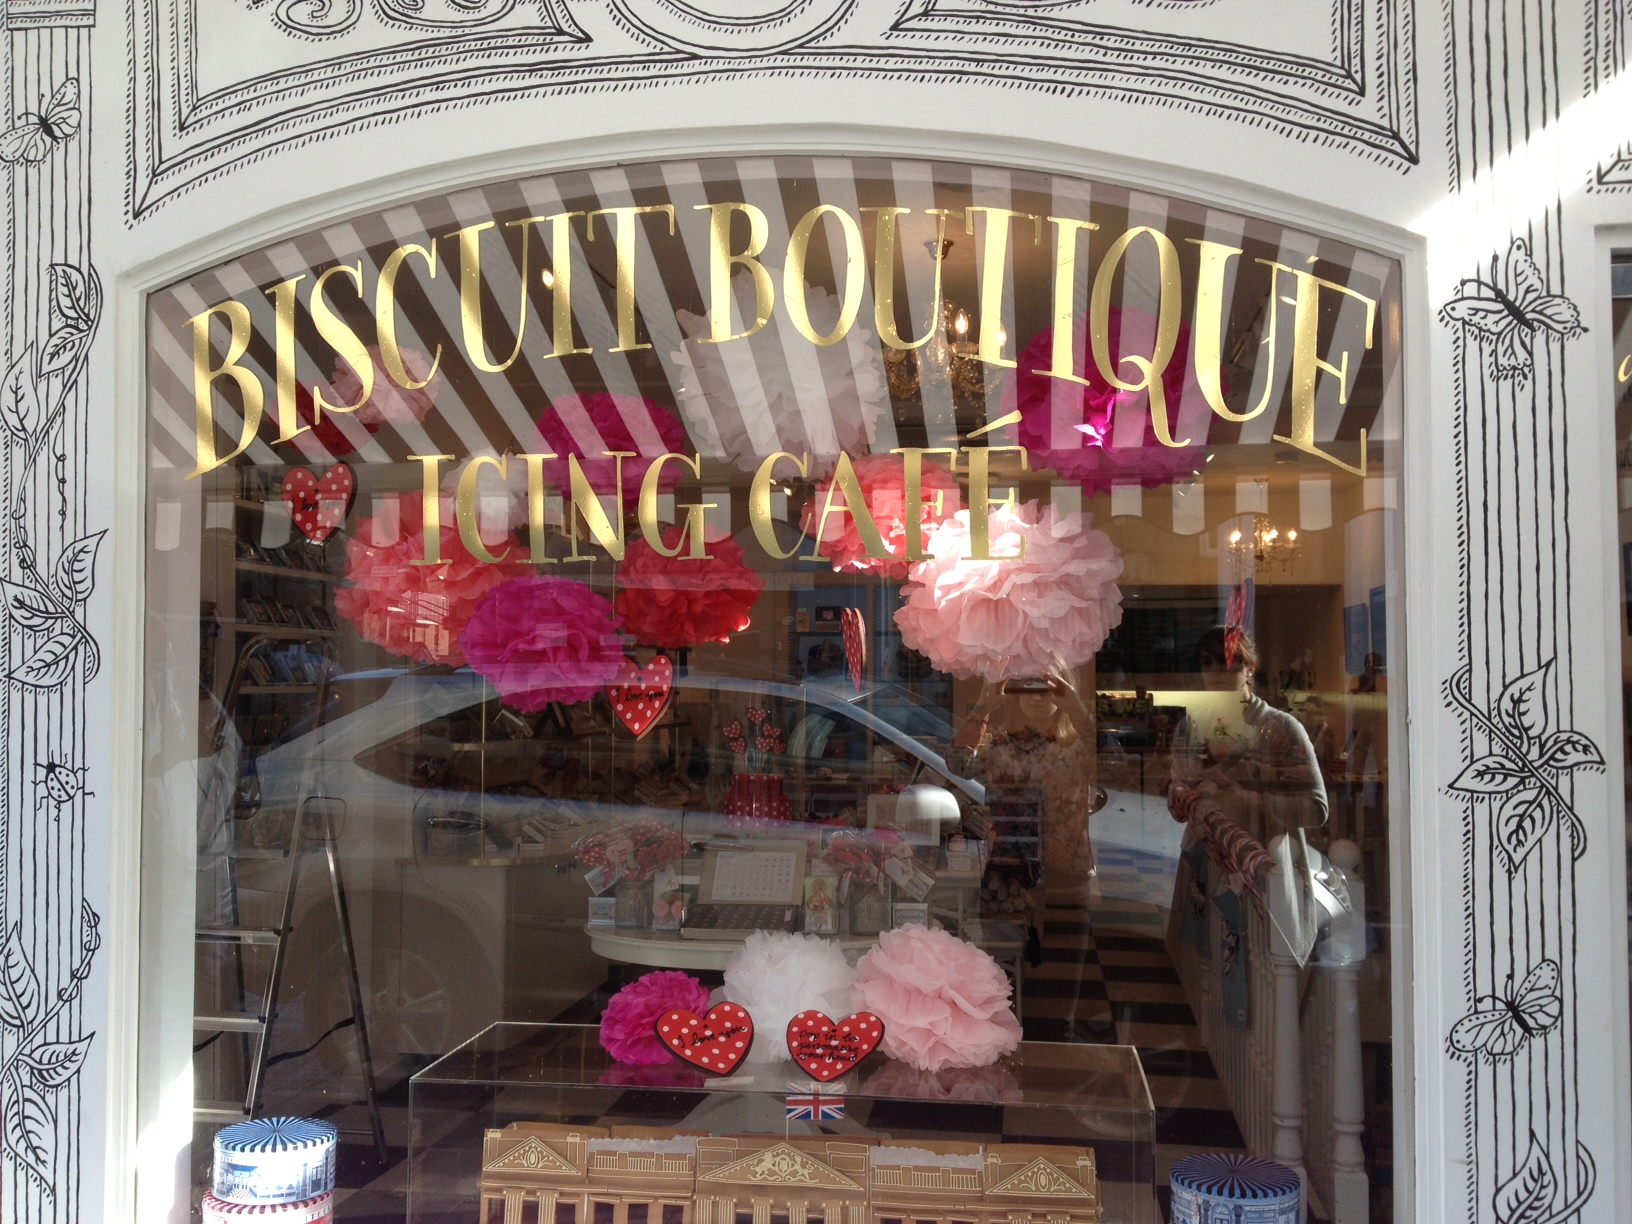 At Biscuit Boutique we found a clean and lovely window display, prepared for Valentine's day with big flowers and two cute hearts.